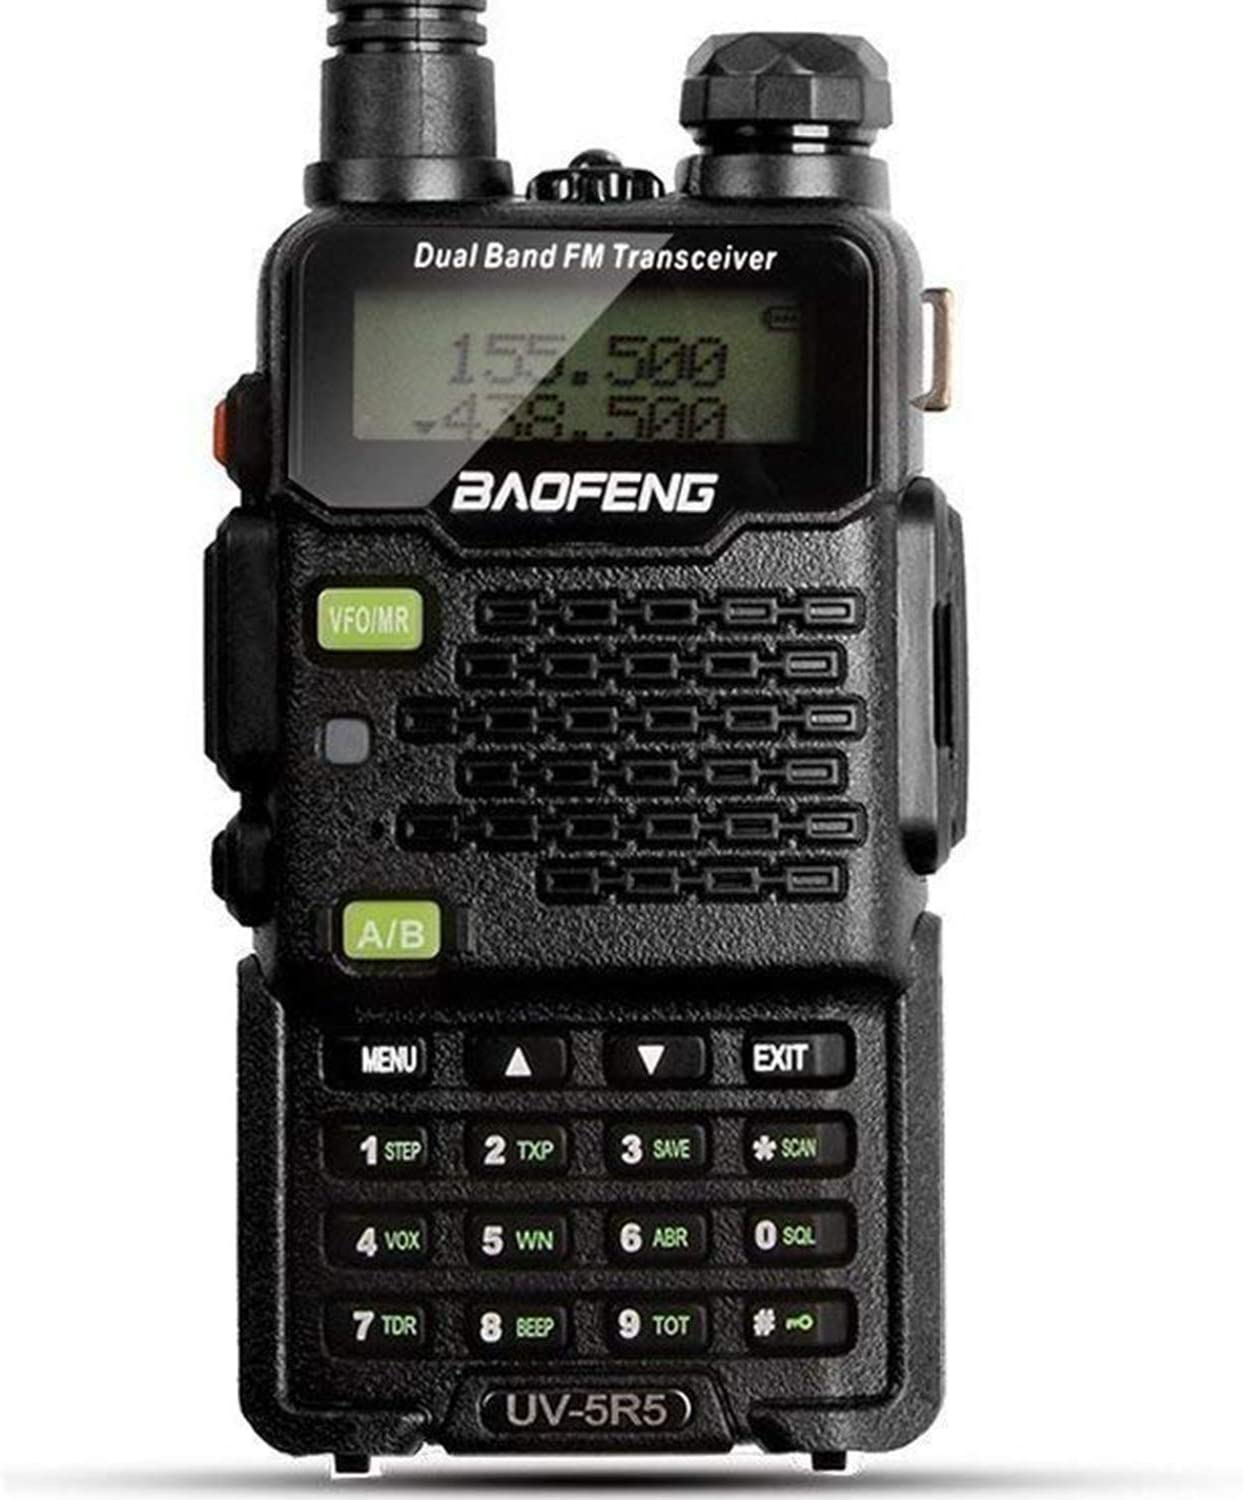 Two Way Radio, Baofeng Walkie Talkie UV-5R5 5W Dual-Band Two-Way Ham Radio Transceiver UHF/VHF 136-174/400-520MHz,65-108MHz FM with Upgraded Earpiece, Built-in VOX Function,Battery,Charger